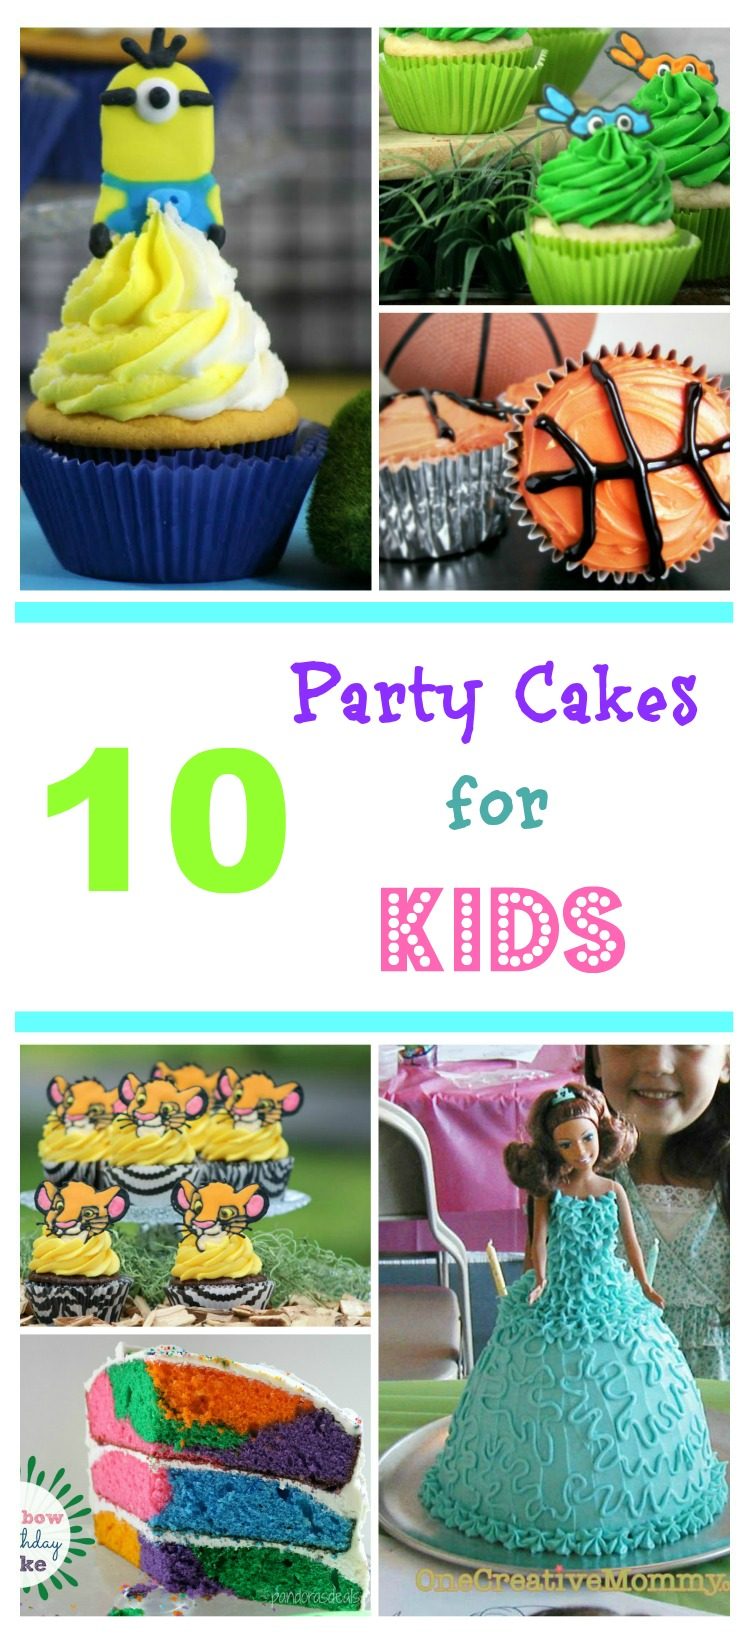 Looking for some cute birthday cake recipes? Check out our list of 10 Party Cakes for Kids here!